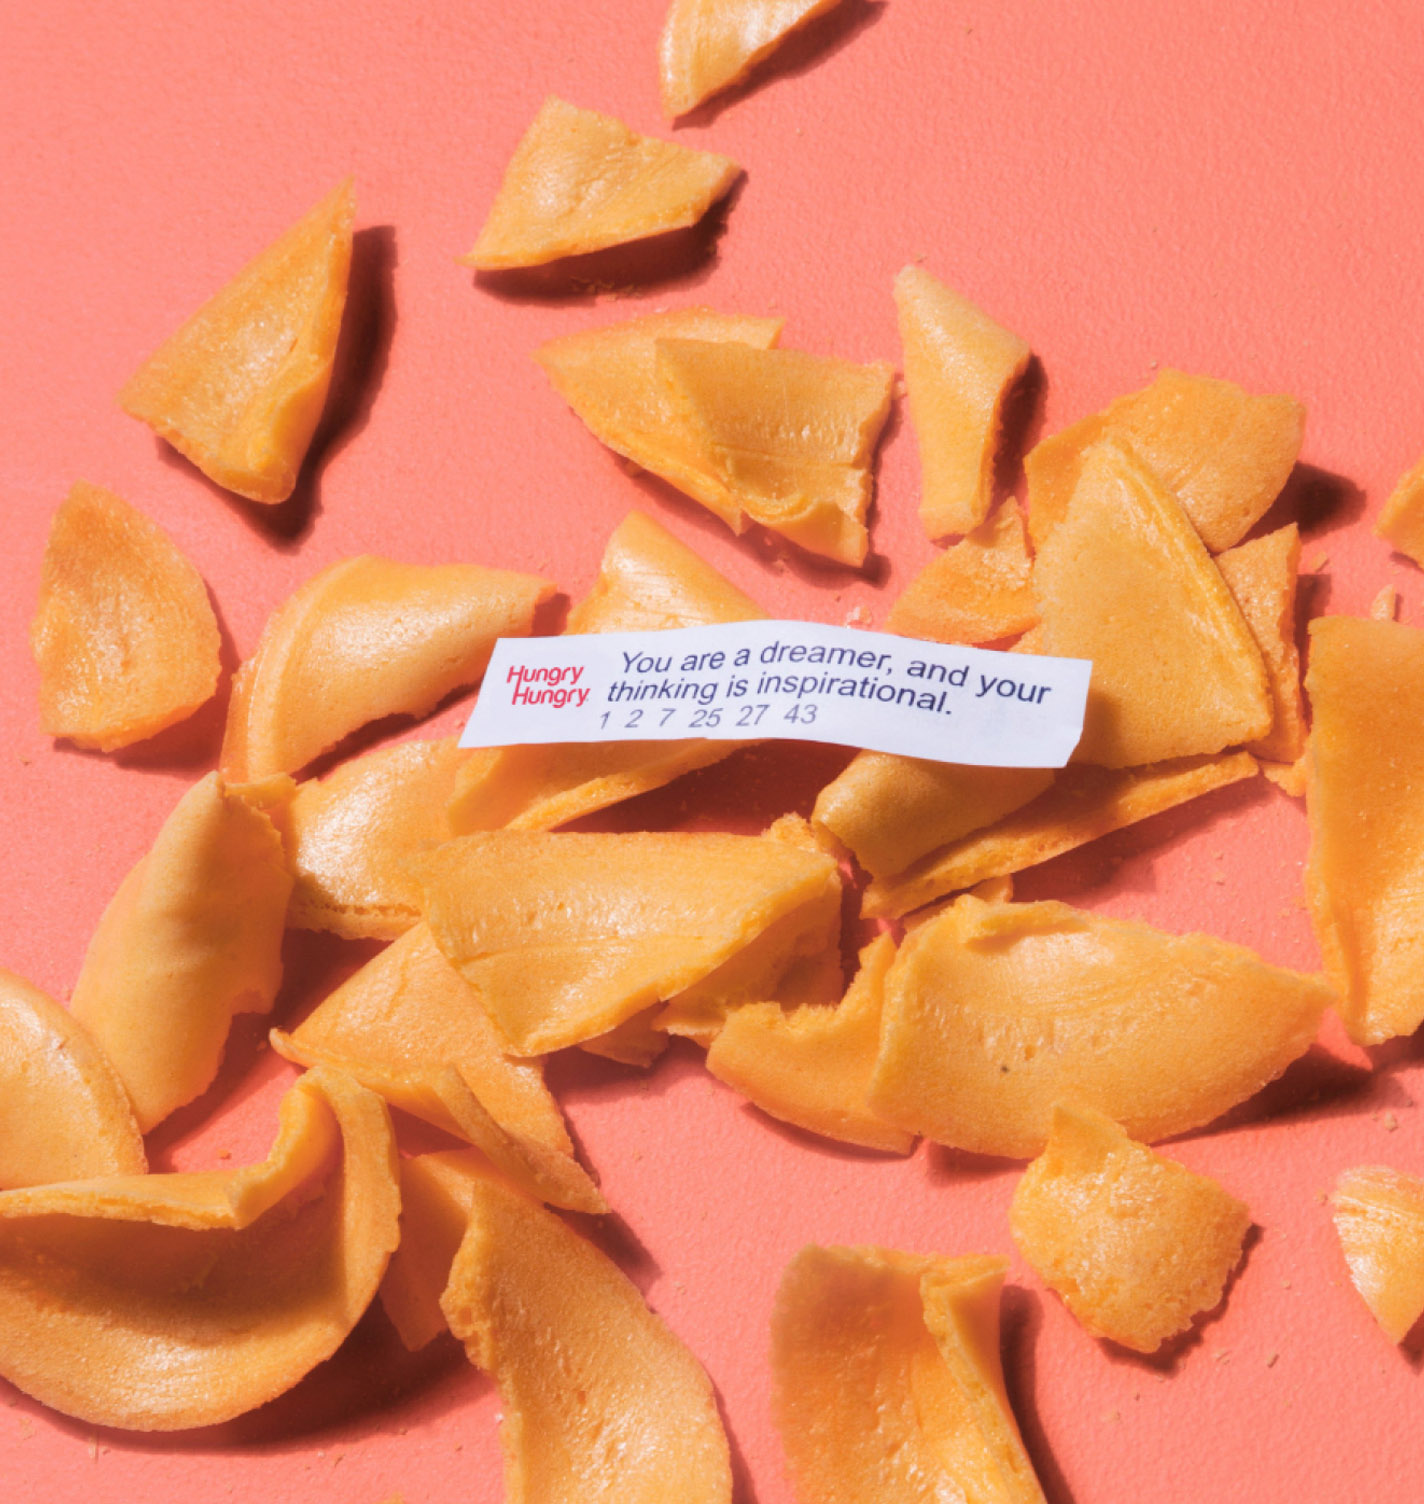 Crushed fortune cookie with HungryHungry branded fortune reading in the centre on pink background